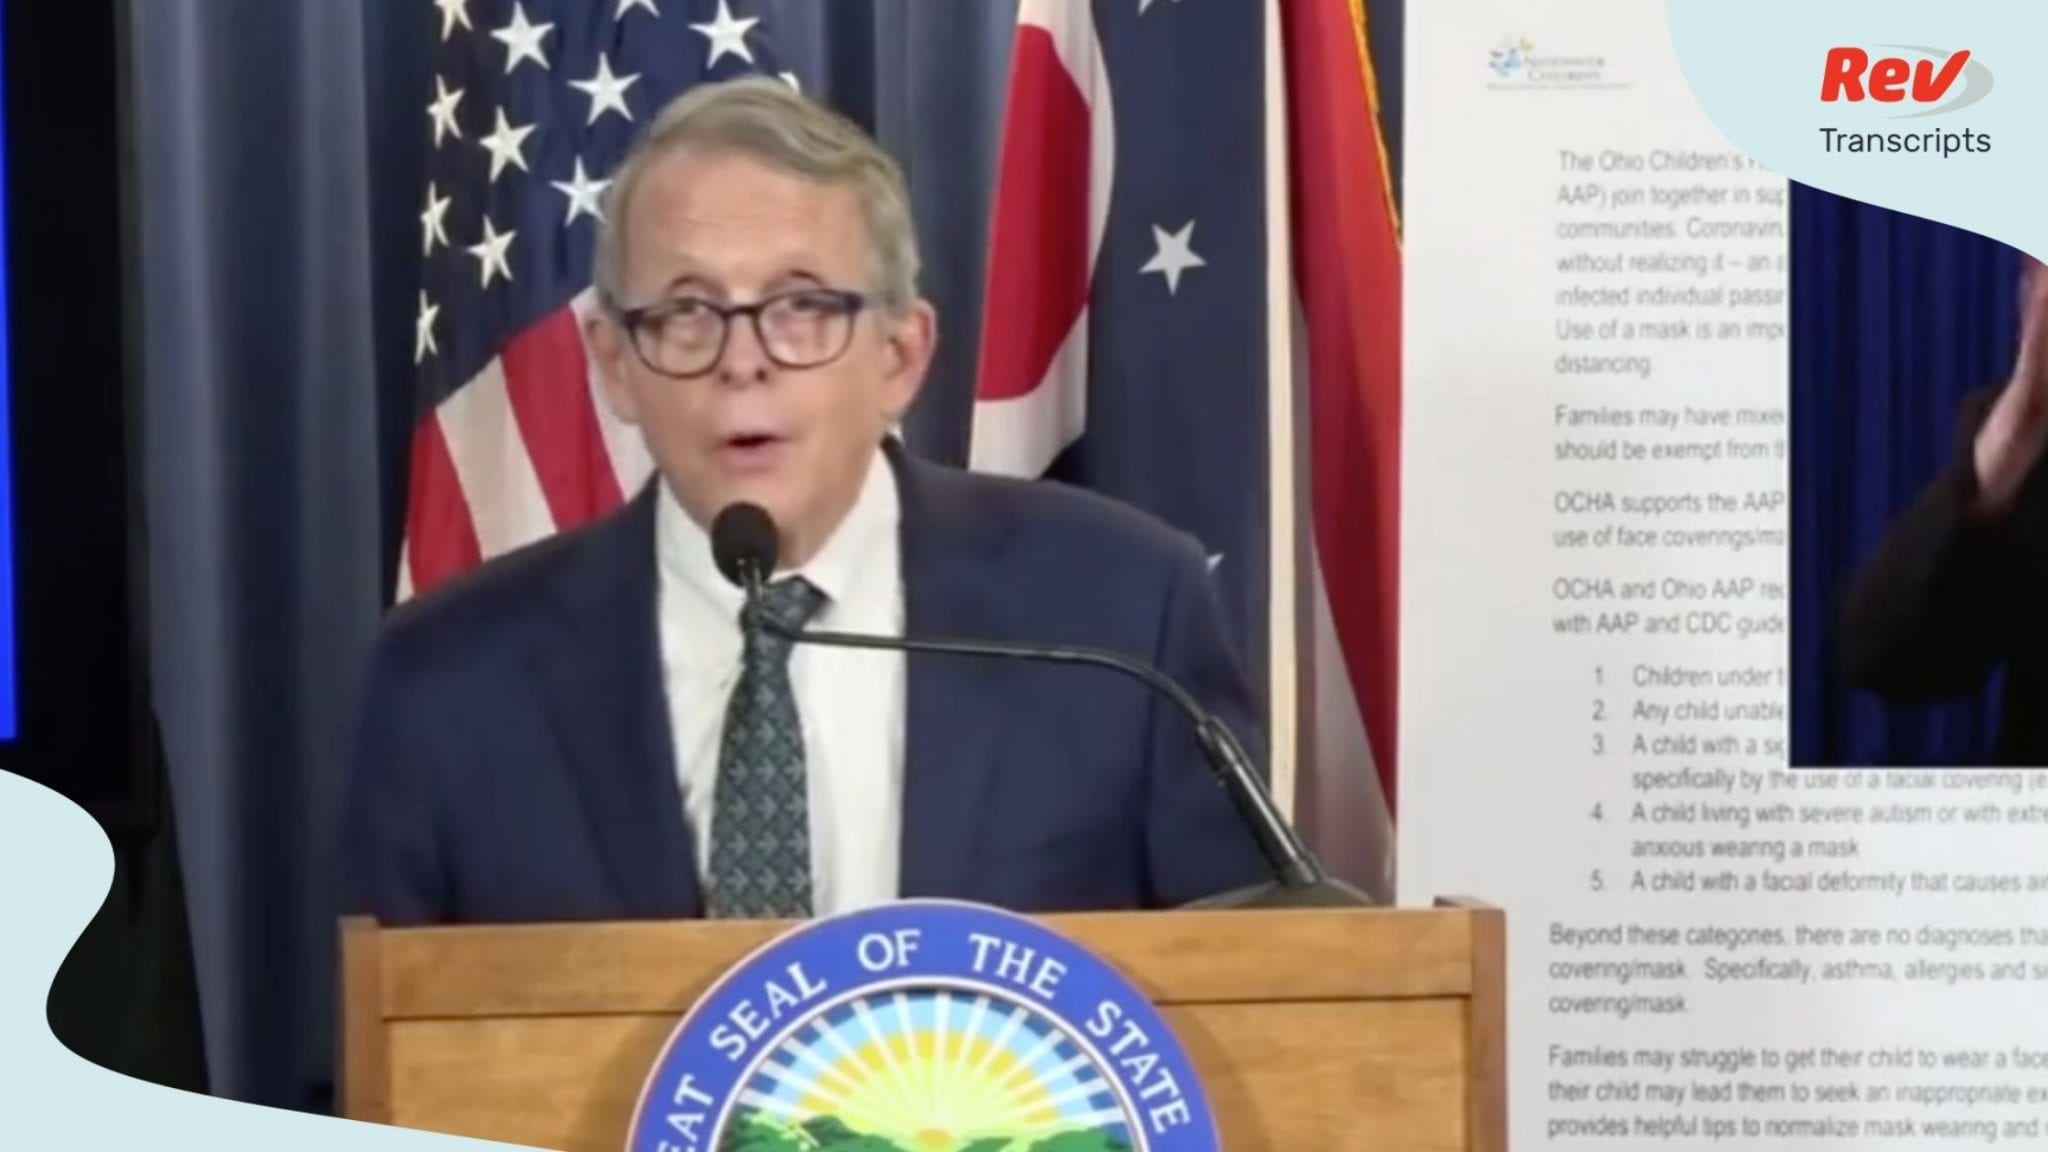 Mike DeWine Ohio Press Conference Transcript August 4